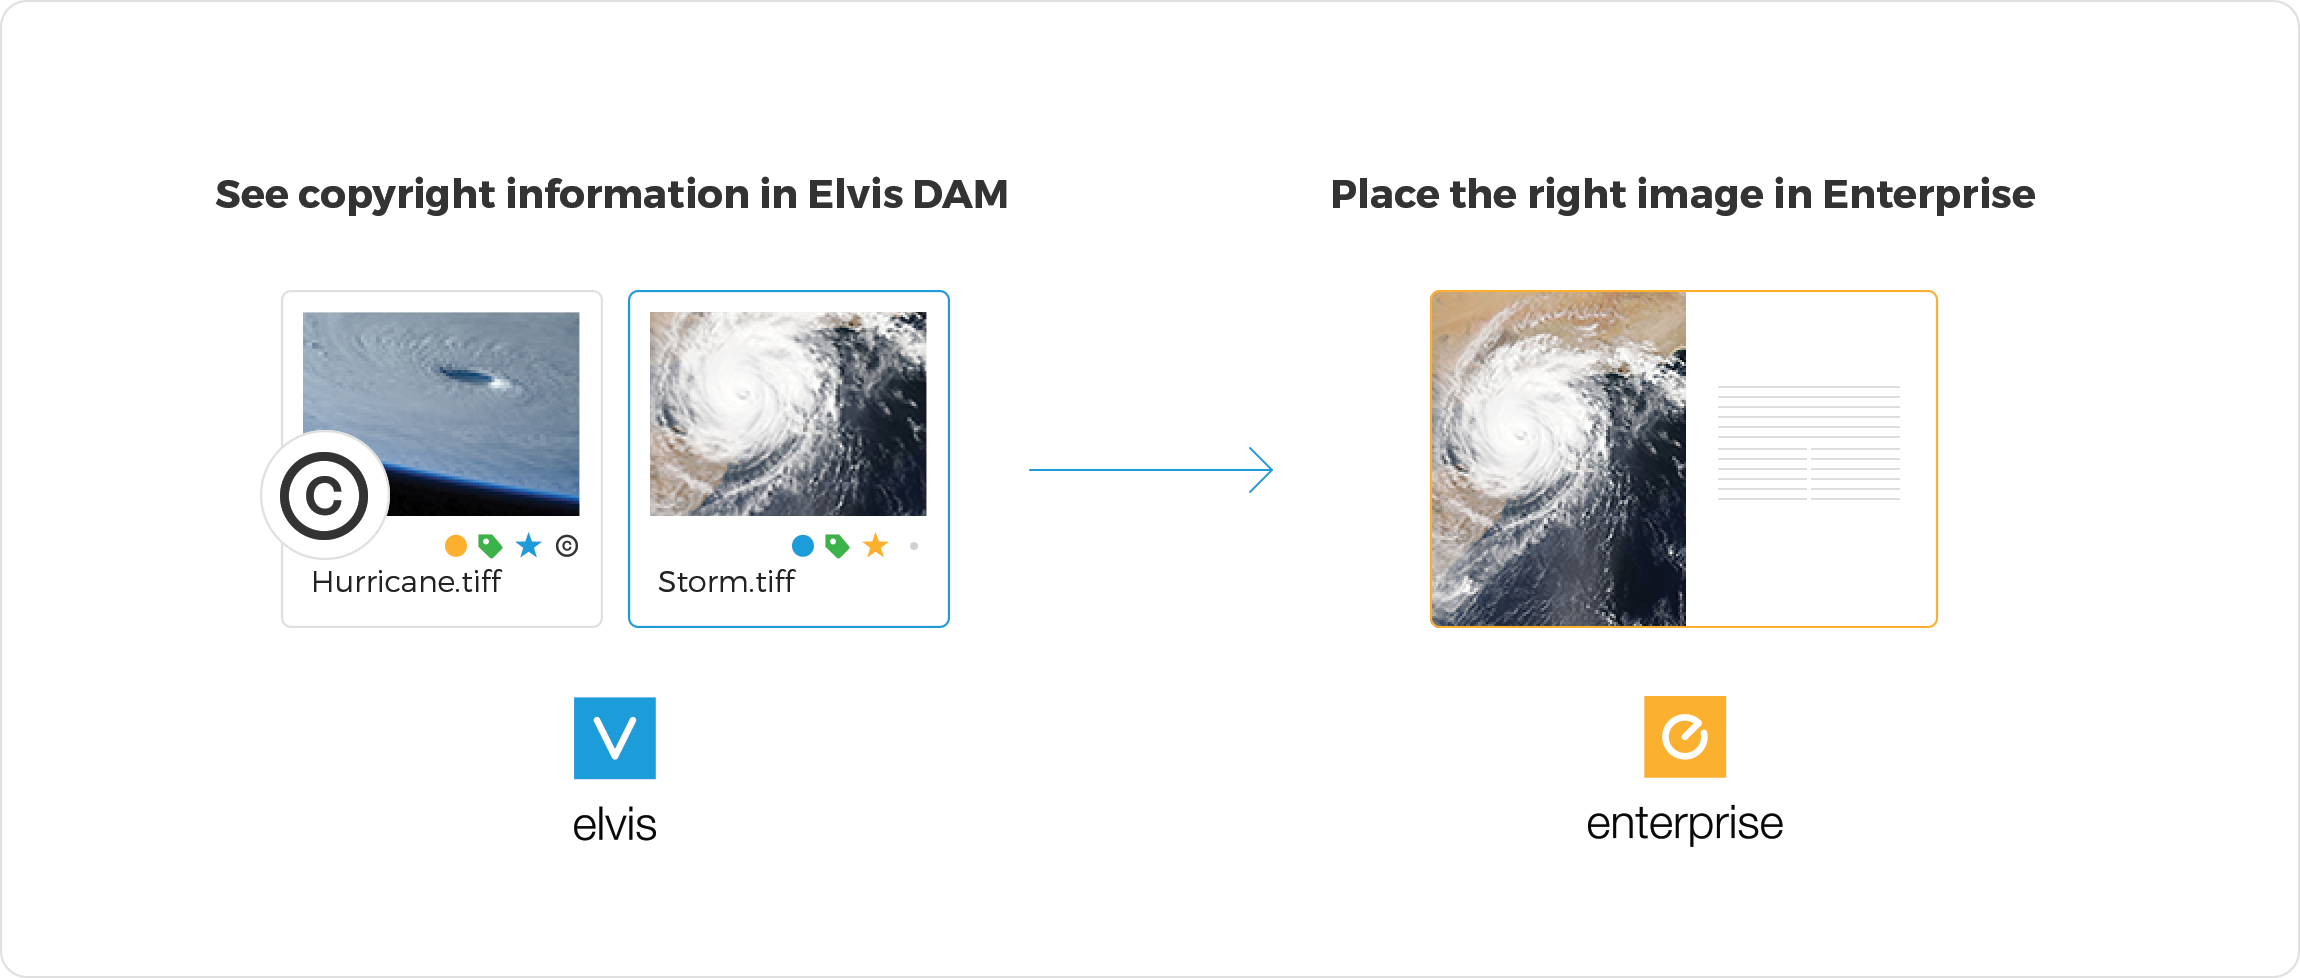 elvis-dam-enterprise-integration-prevent-copyright-problems-2x.png